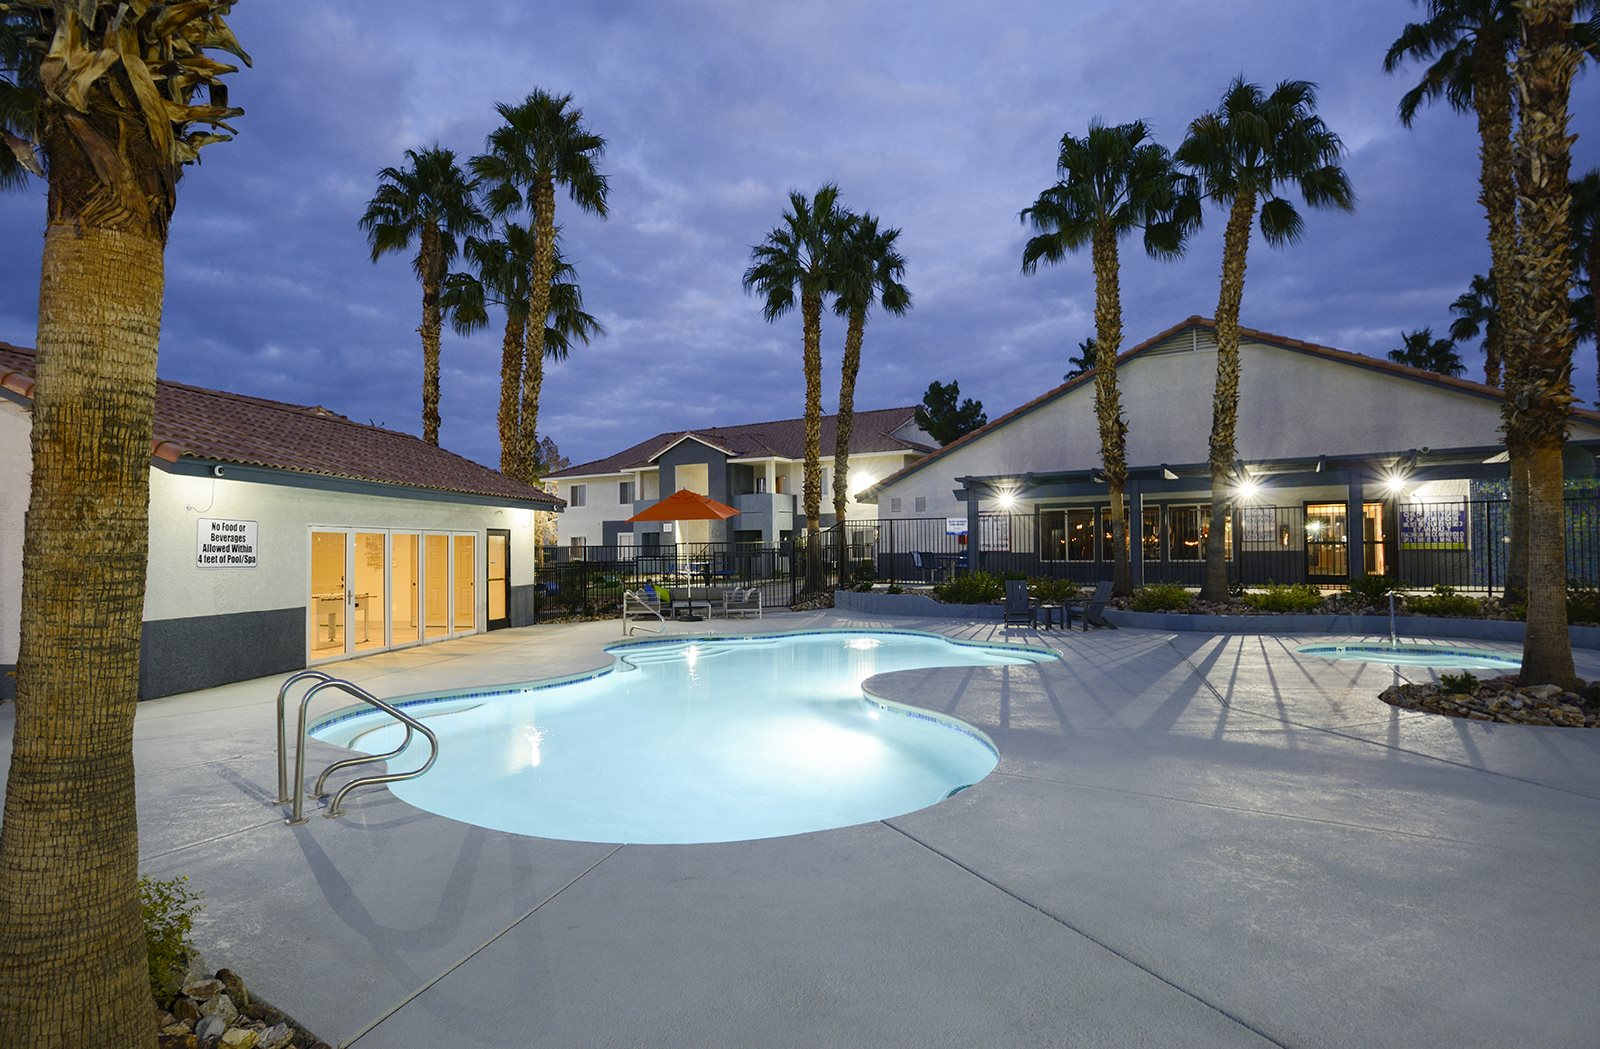 Outdoor Pool at night at Prelude in the Park, Nevada, 89015